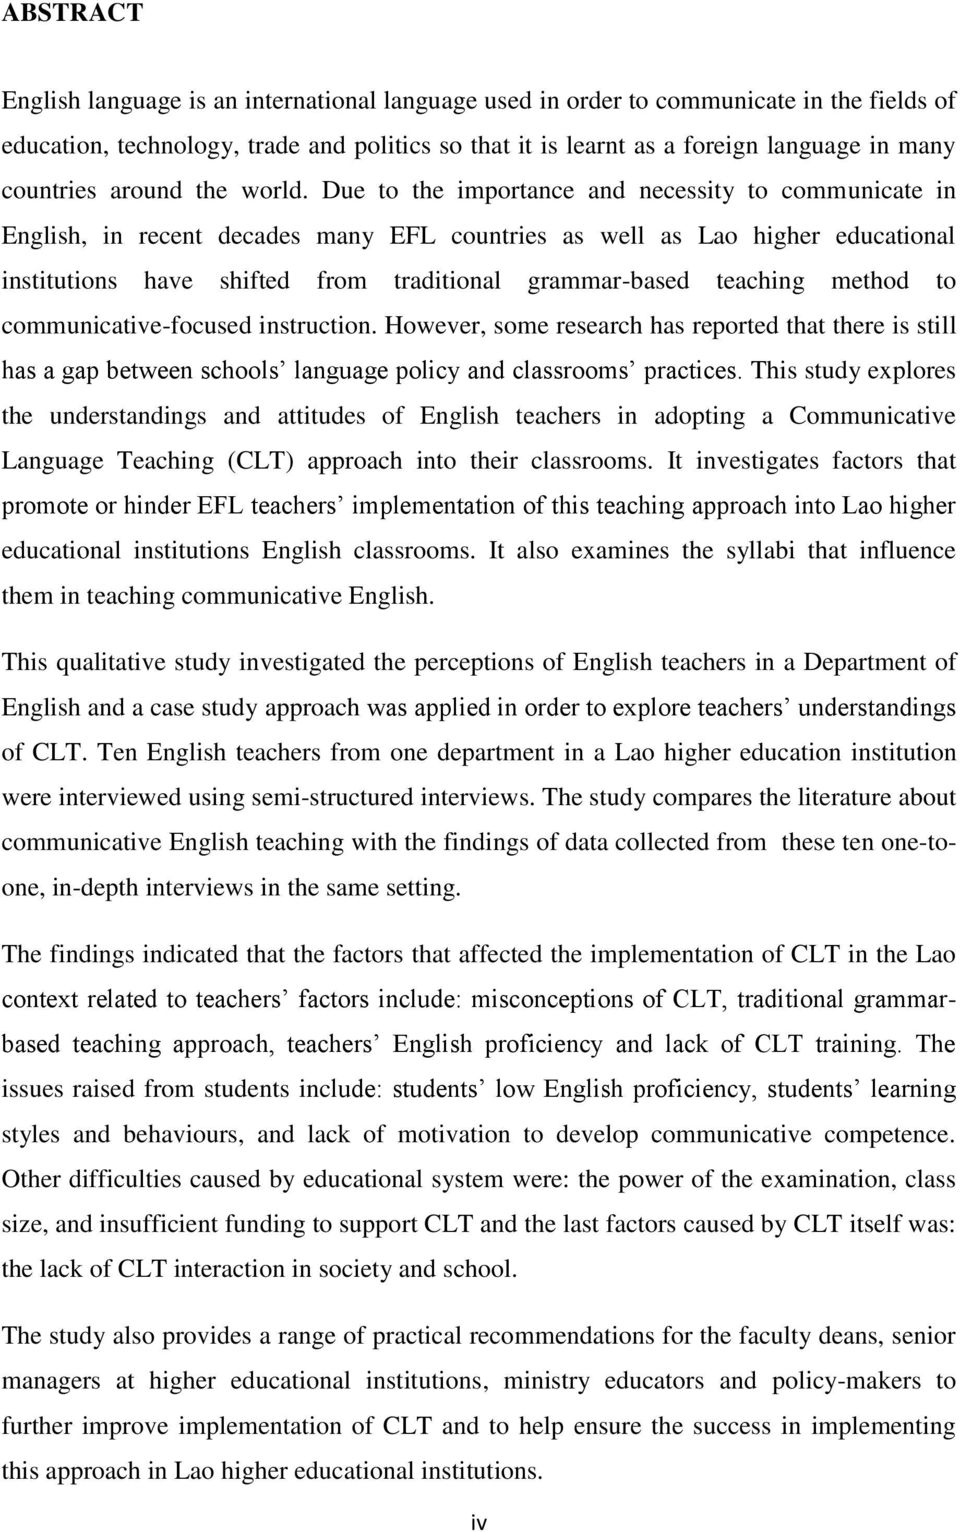 communicative language teaching in efl contexts Learning english as a foreign language (efl) has long been regarded a challenging task in the efl context english has no vital function in people's everyday life and communication social uses of foreign language in communicative situations (eg, finding ways to communicate.